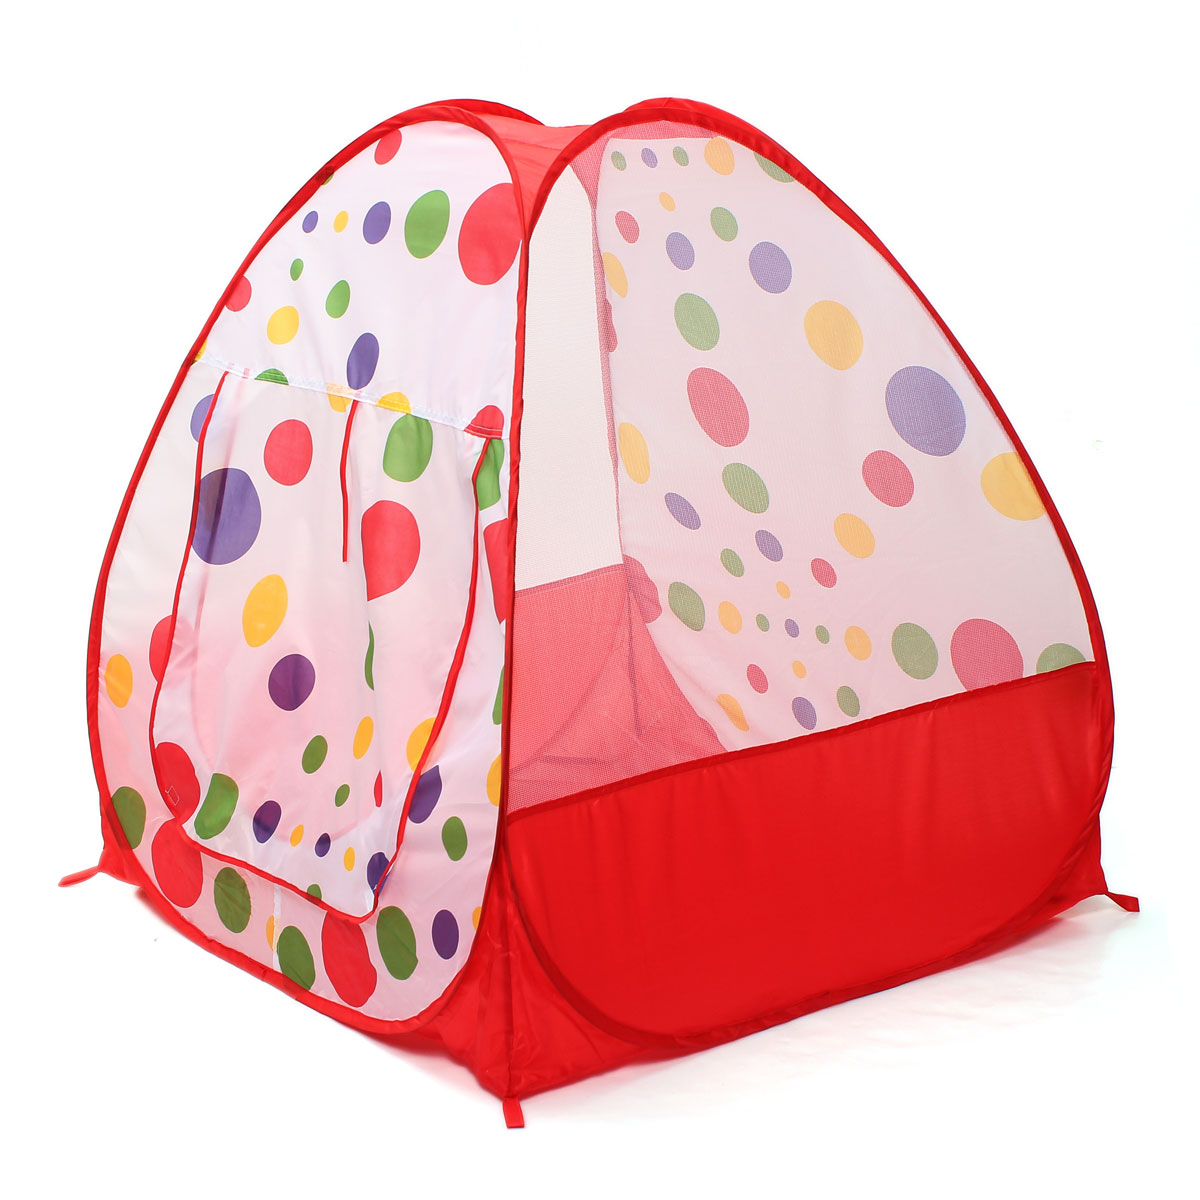 Hot Sale Portable Kids Play Tents Folding Indoor Outdoor Garden Toys Tent Castle Pop Up House  sc 1 st  AliExpress.com & Online Get Cheap Kids Toy House Garden -Aliexpress.com | Alibaba Group